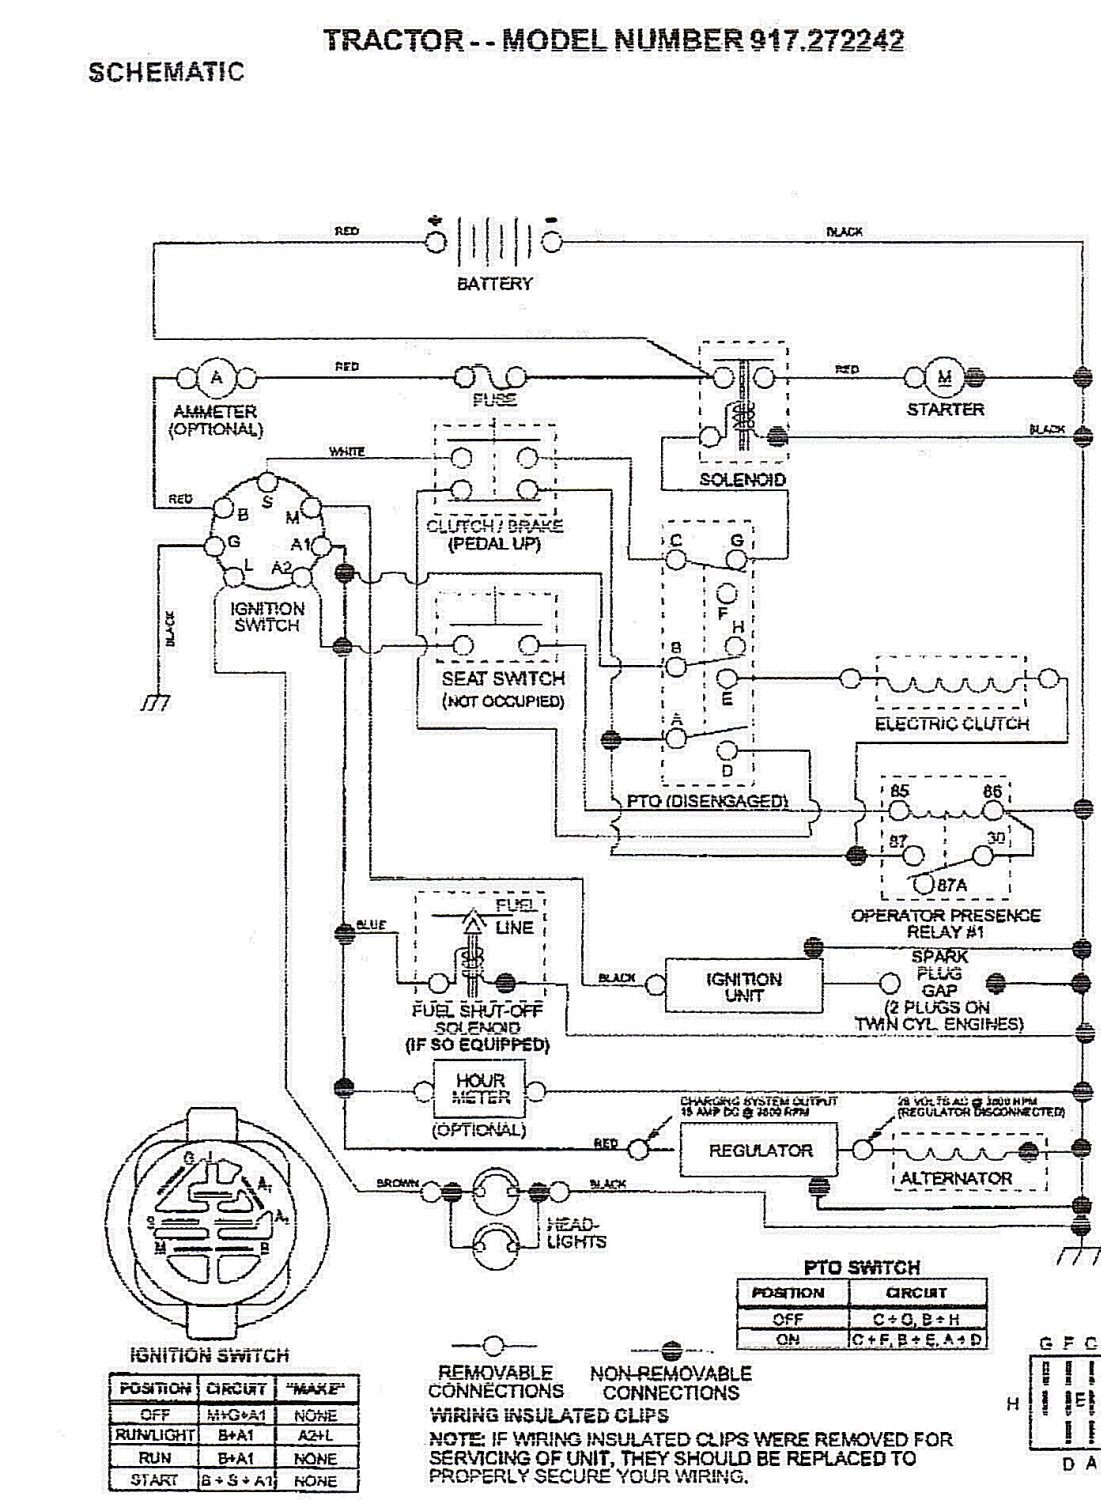 16 hp briggs and stratton wiring diagram free picture explained briggs stratton engine diagram 402437 16 hp 16 hp briggs and stratton wiring diagram free picture enthusiast briggs and stratton 12 hp wiring diagram 16 hp briggs and stratton wiring diagram free